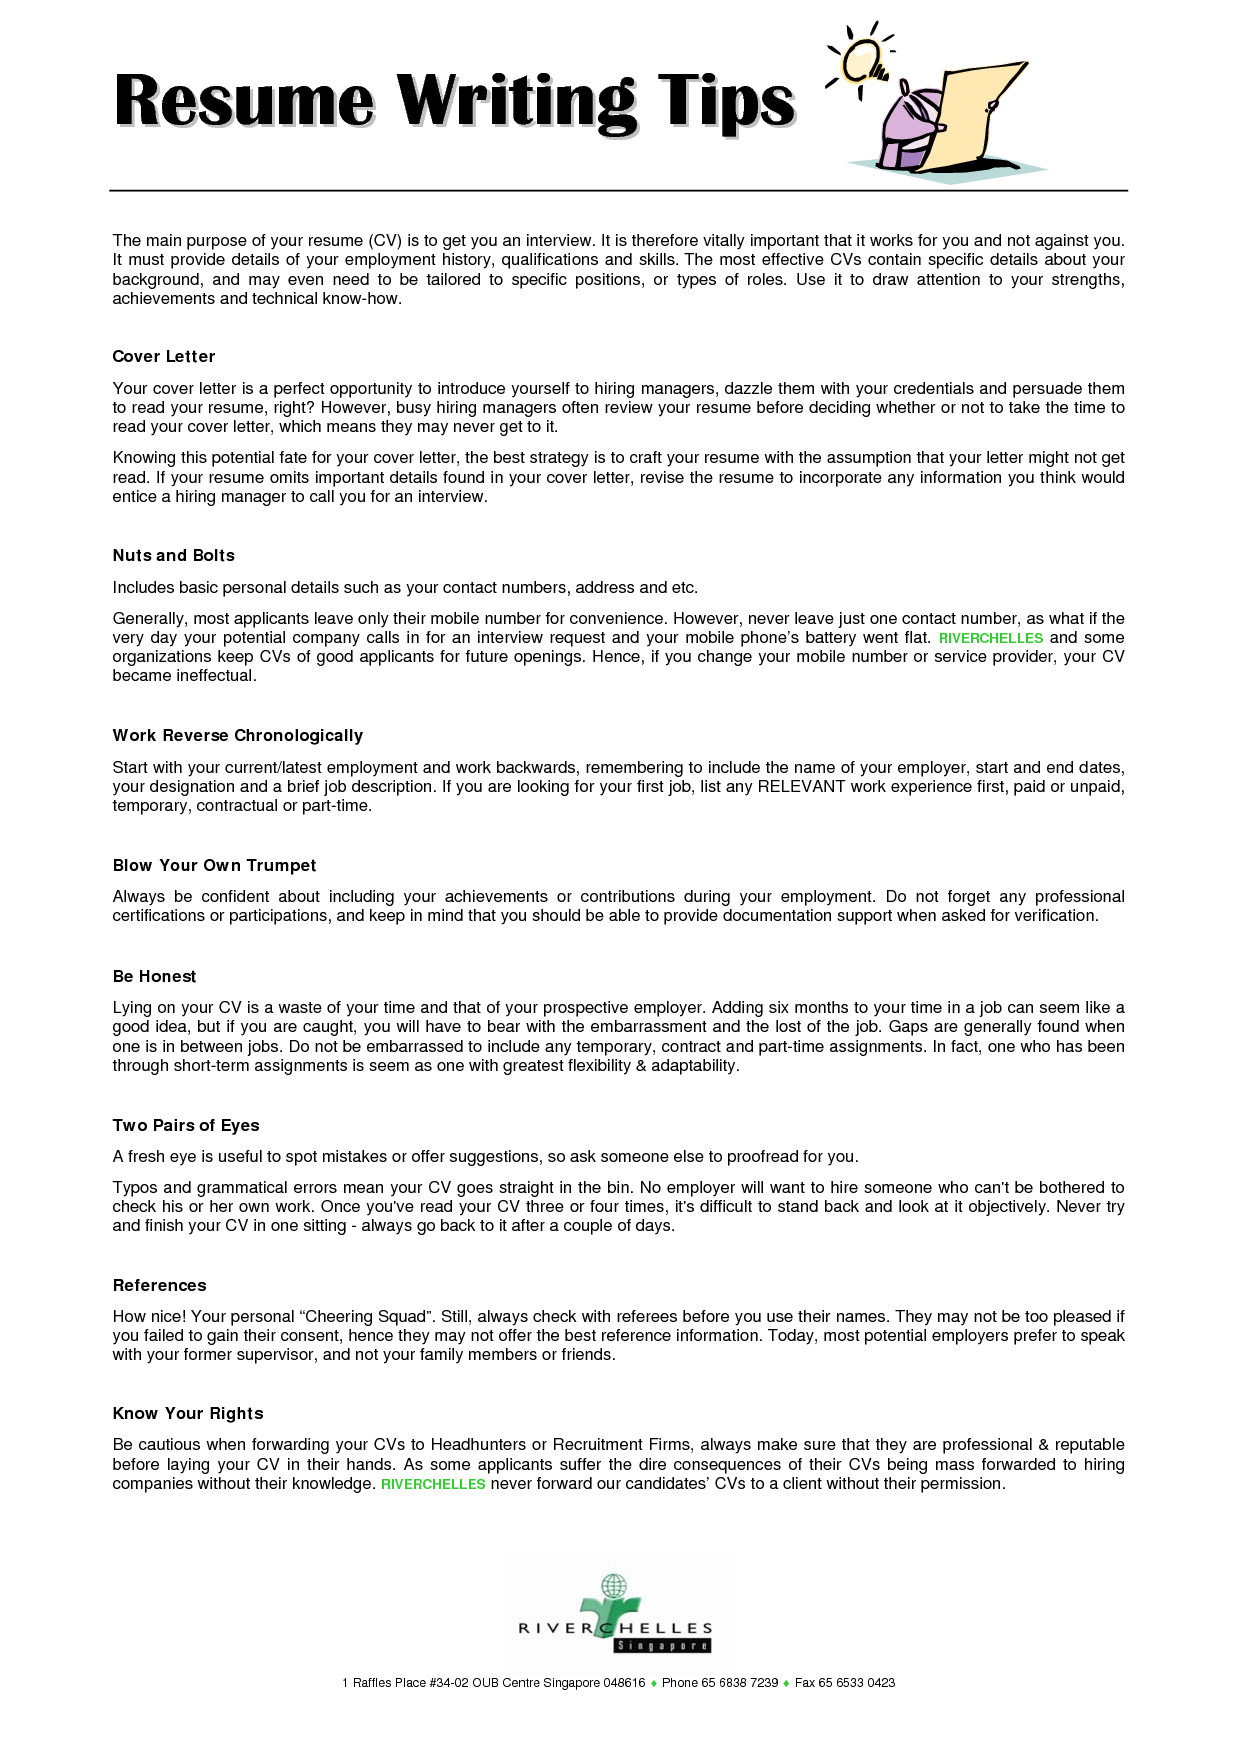 Resume Development Tips 1000+ images about Resume on Pinterest  Resume tips, Resume templates and Resume examples